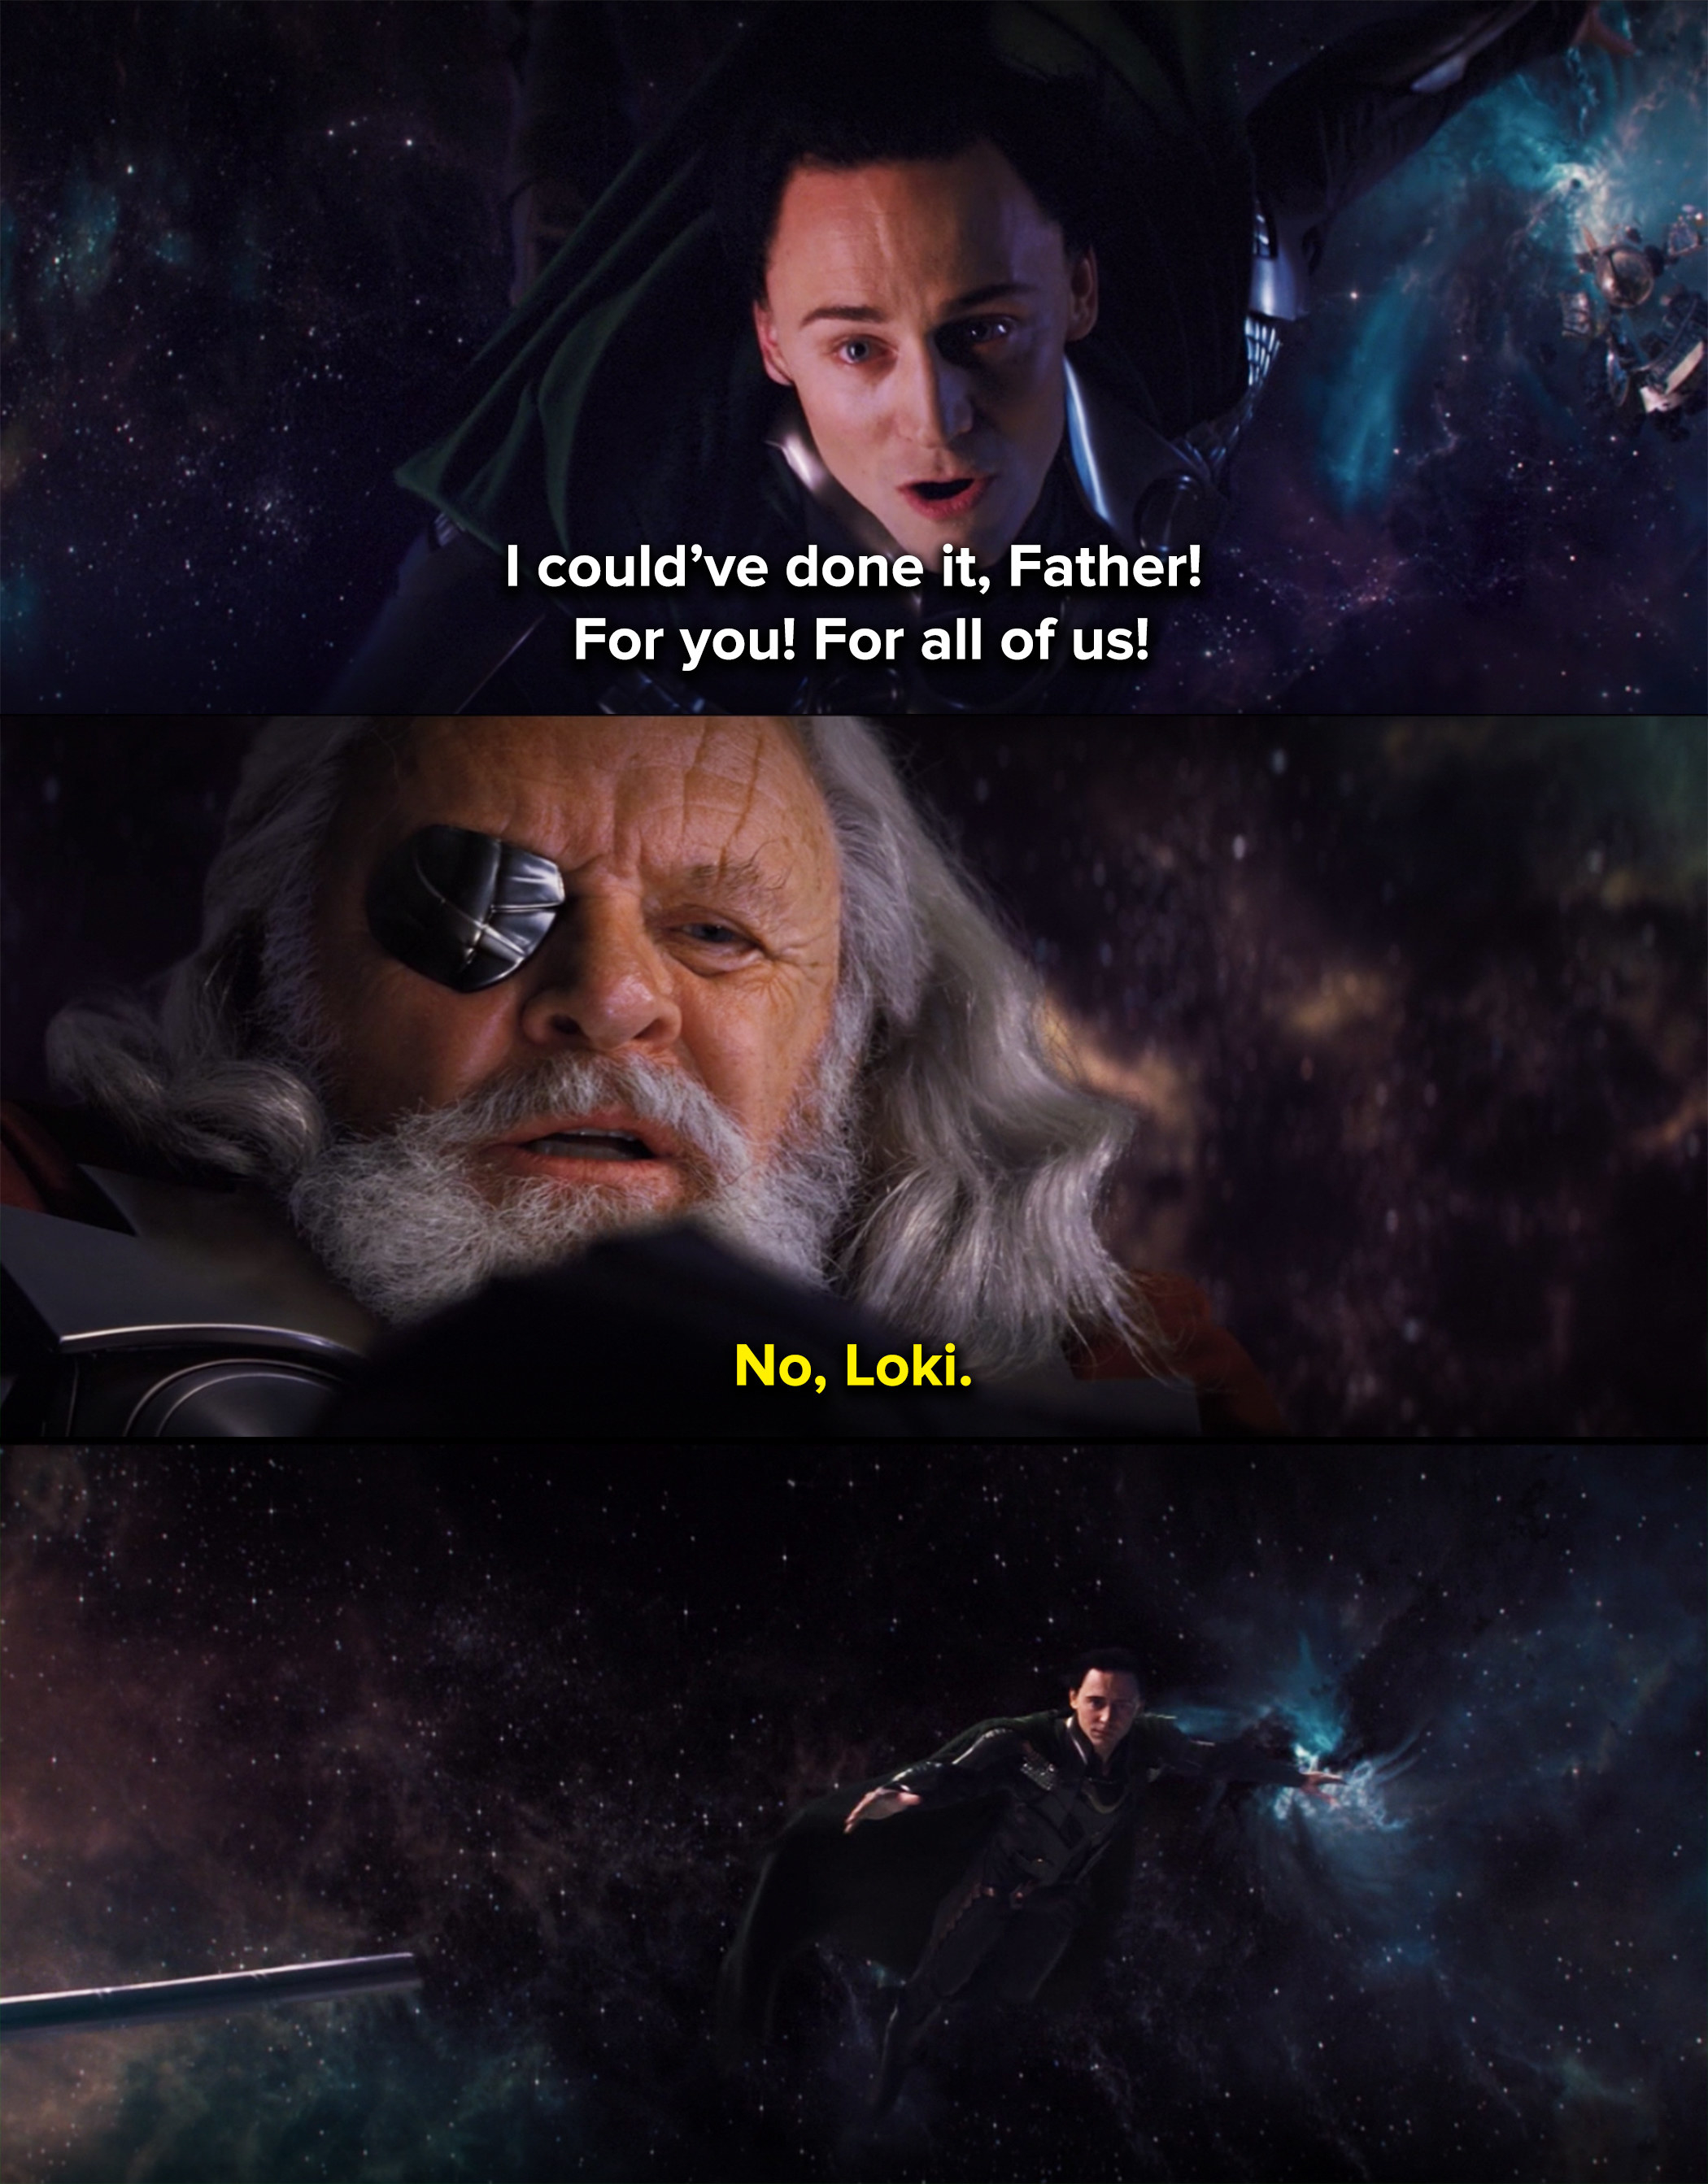 Loki falls into a black hole after Odin rejects him as his son